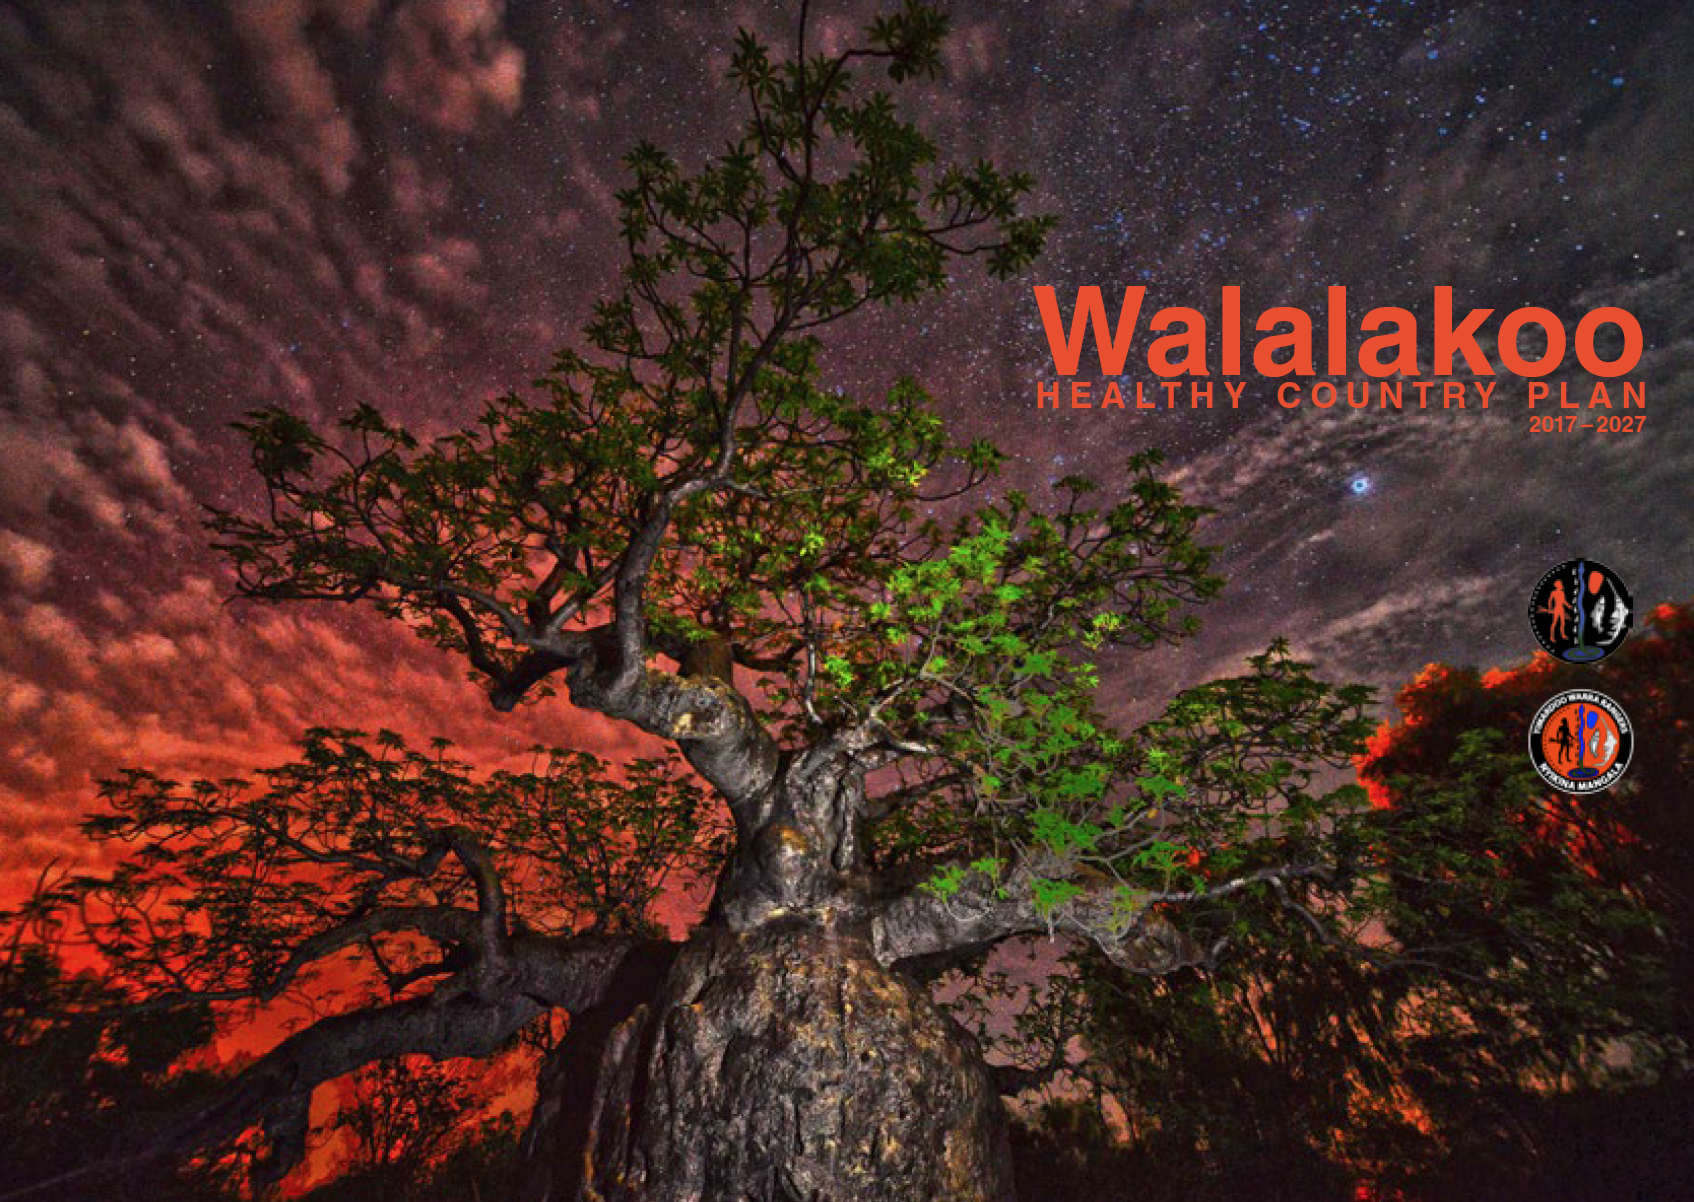 Walalakoo Aboriginal Corporation